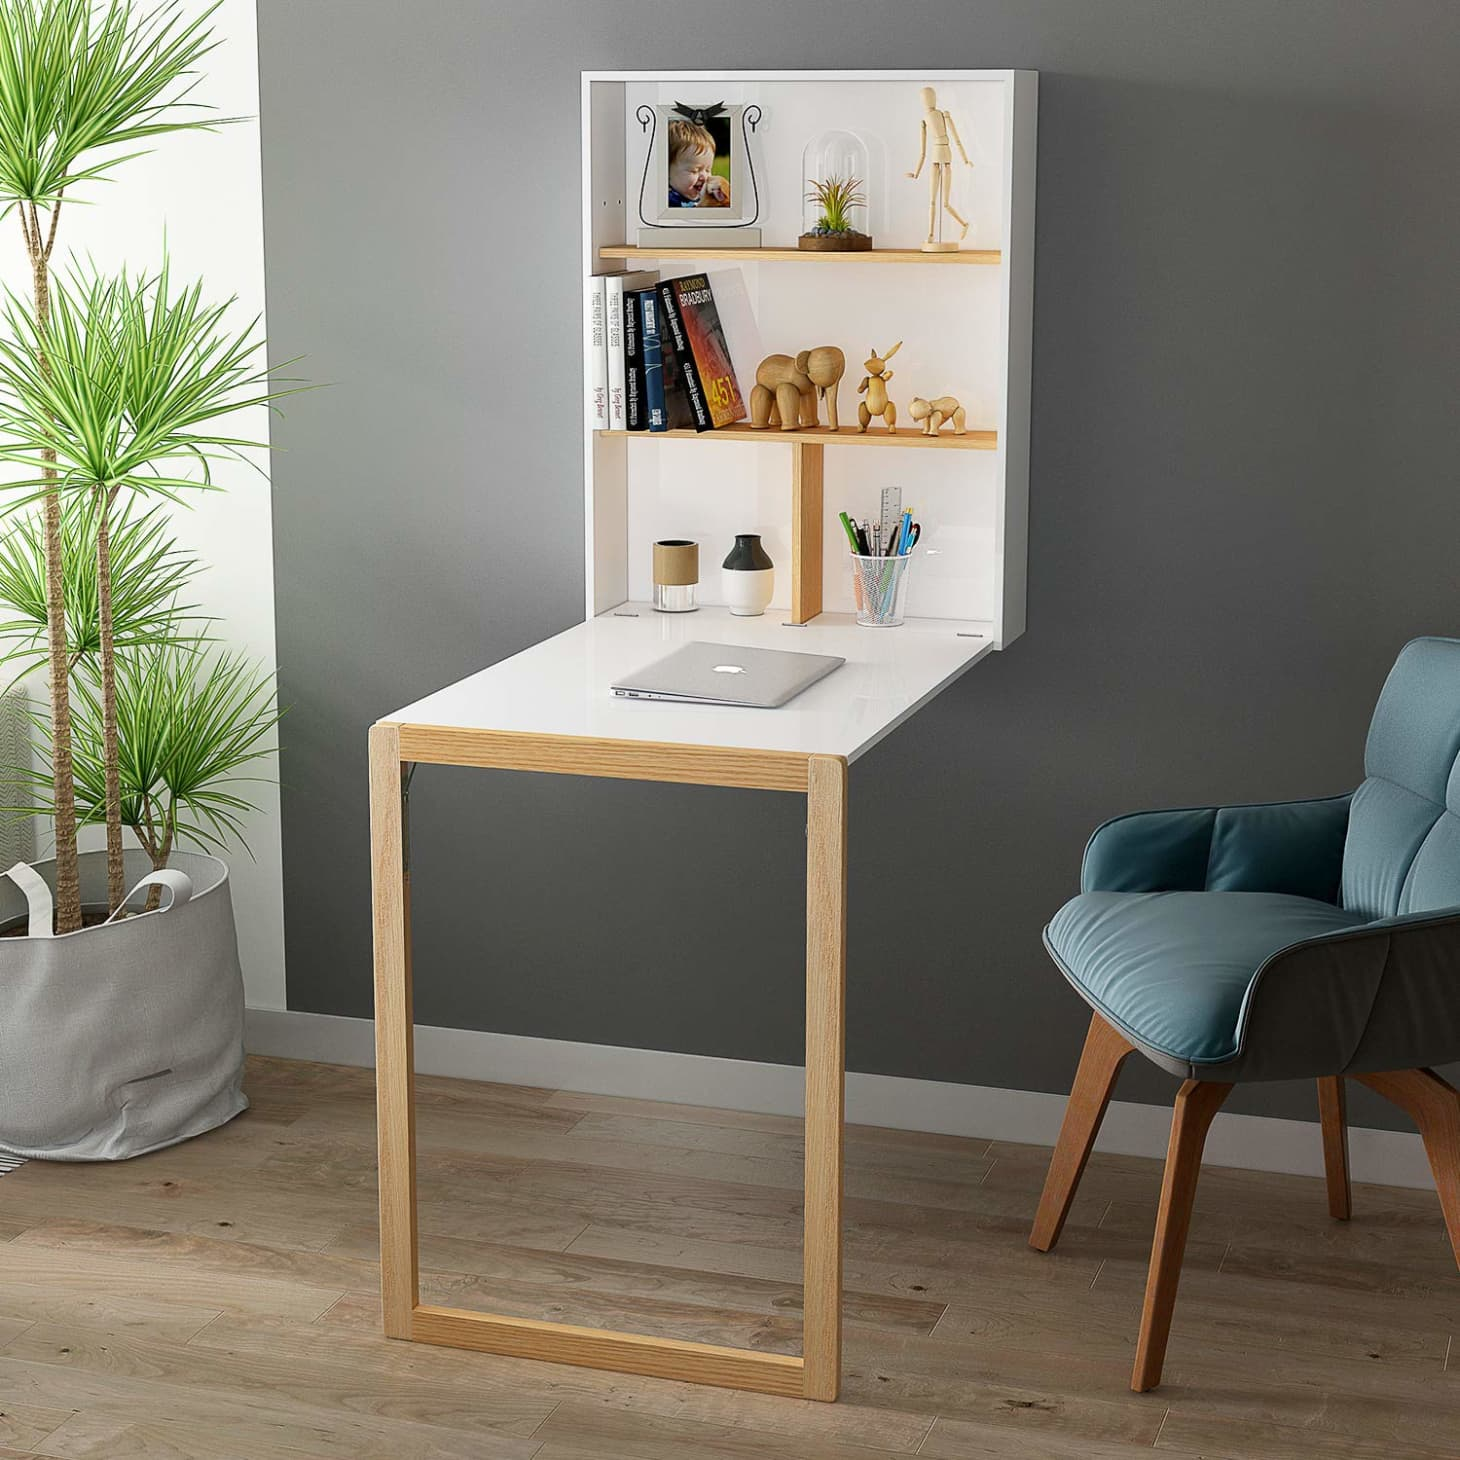 The Best Wall-Mounted Folding Desks 2019 | Apartment Therapy